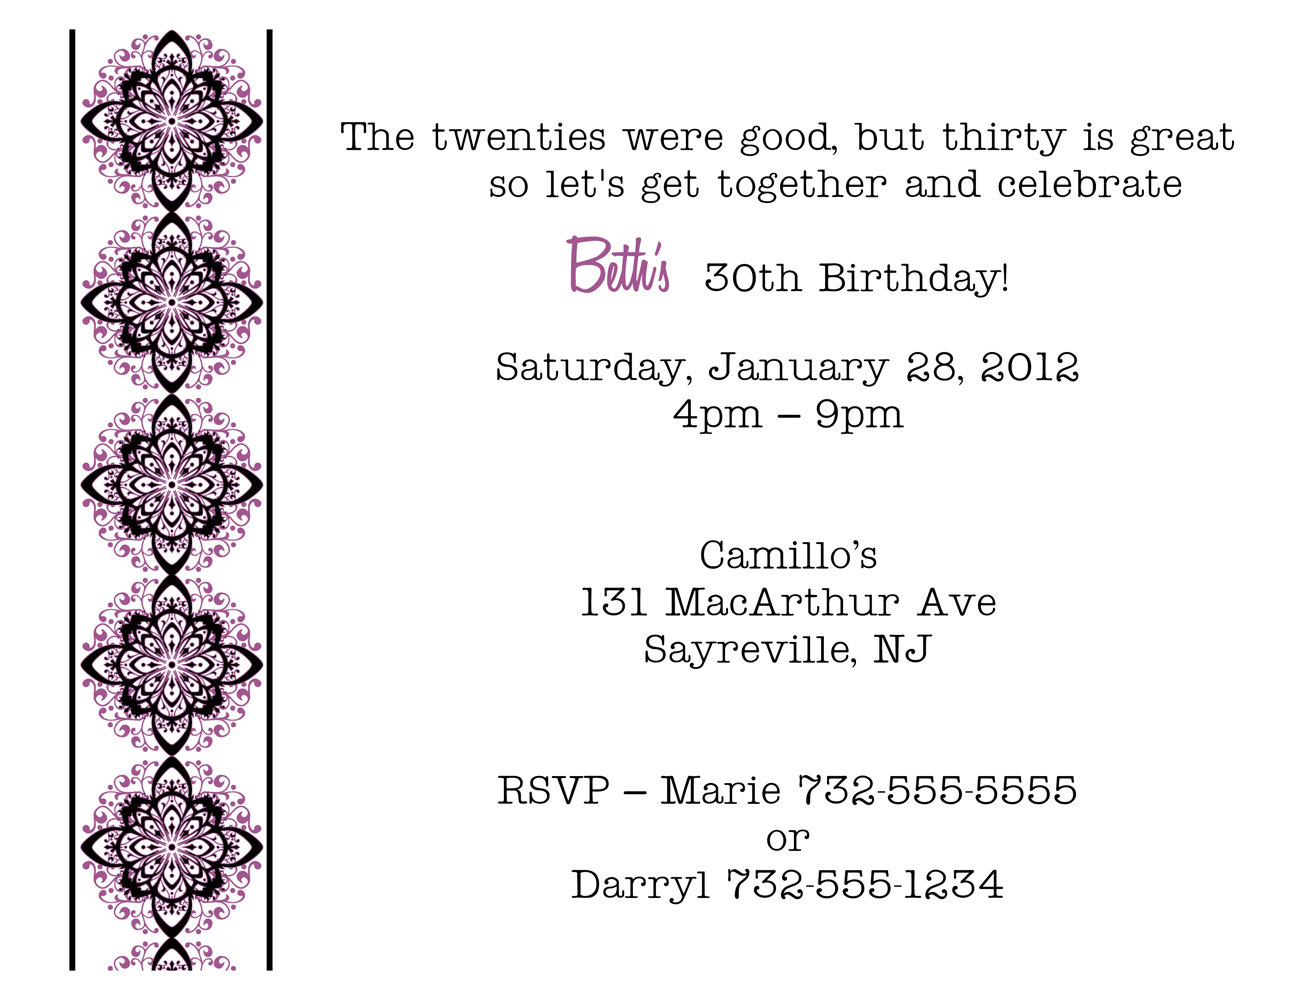 funny birthday invitation quotes ; funny-birthday-party-invitation-wording-for-your-save-the-dates-and-invites-2